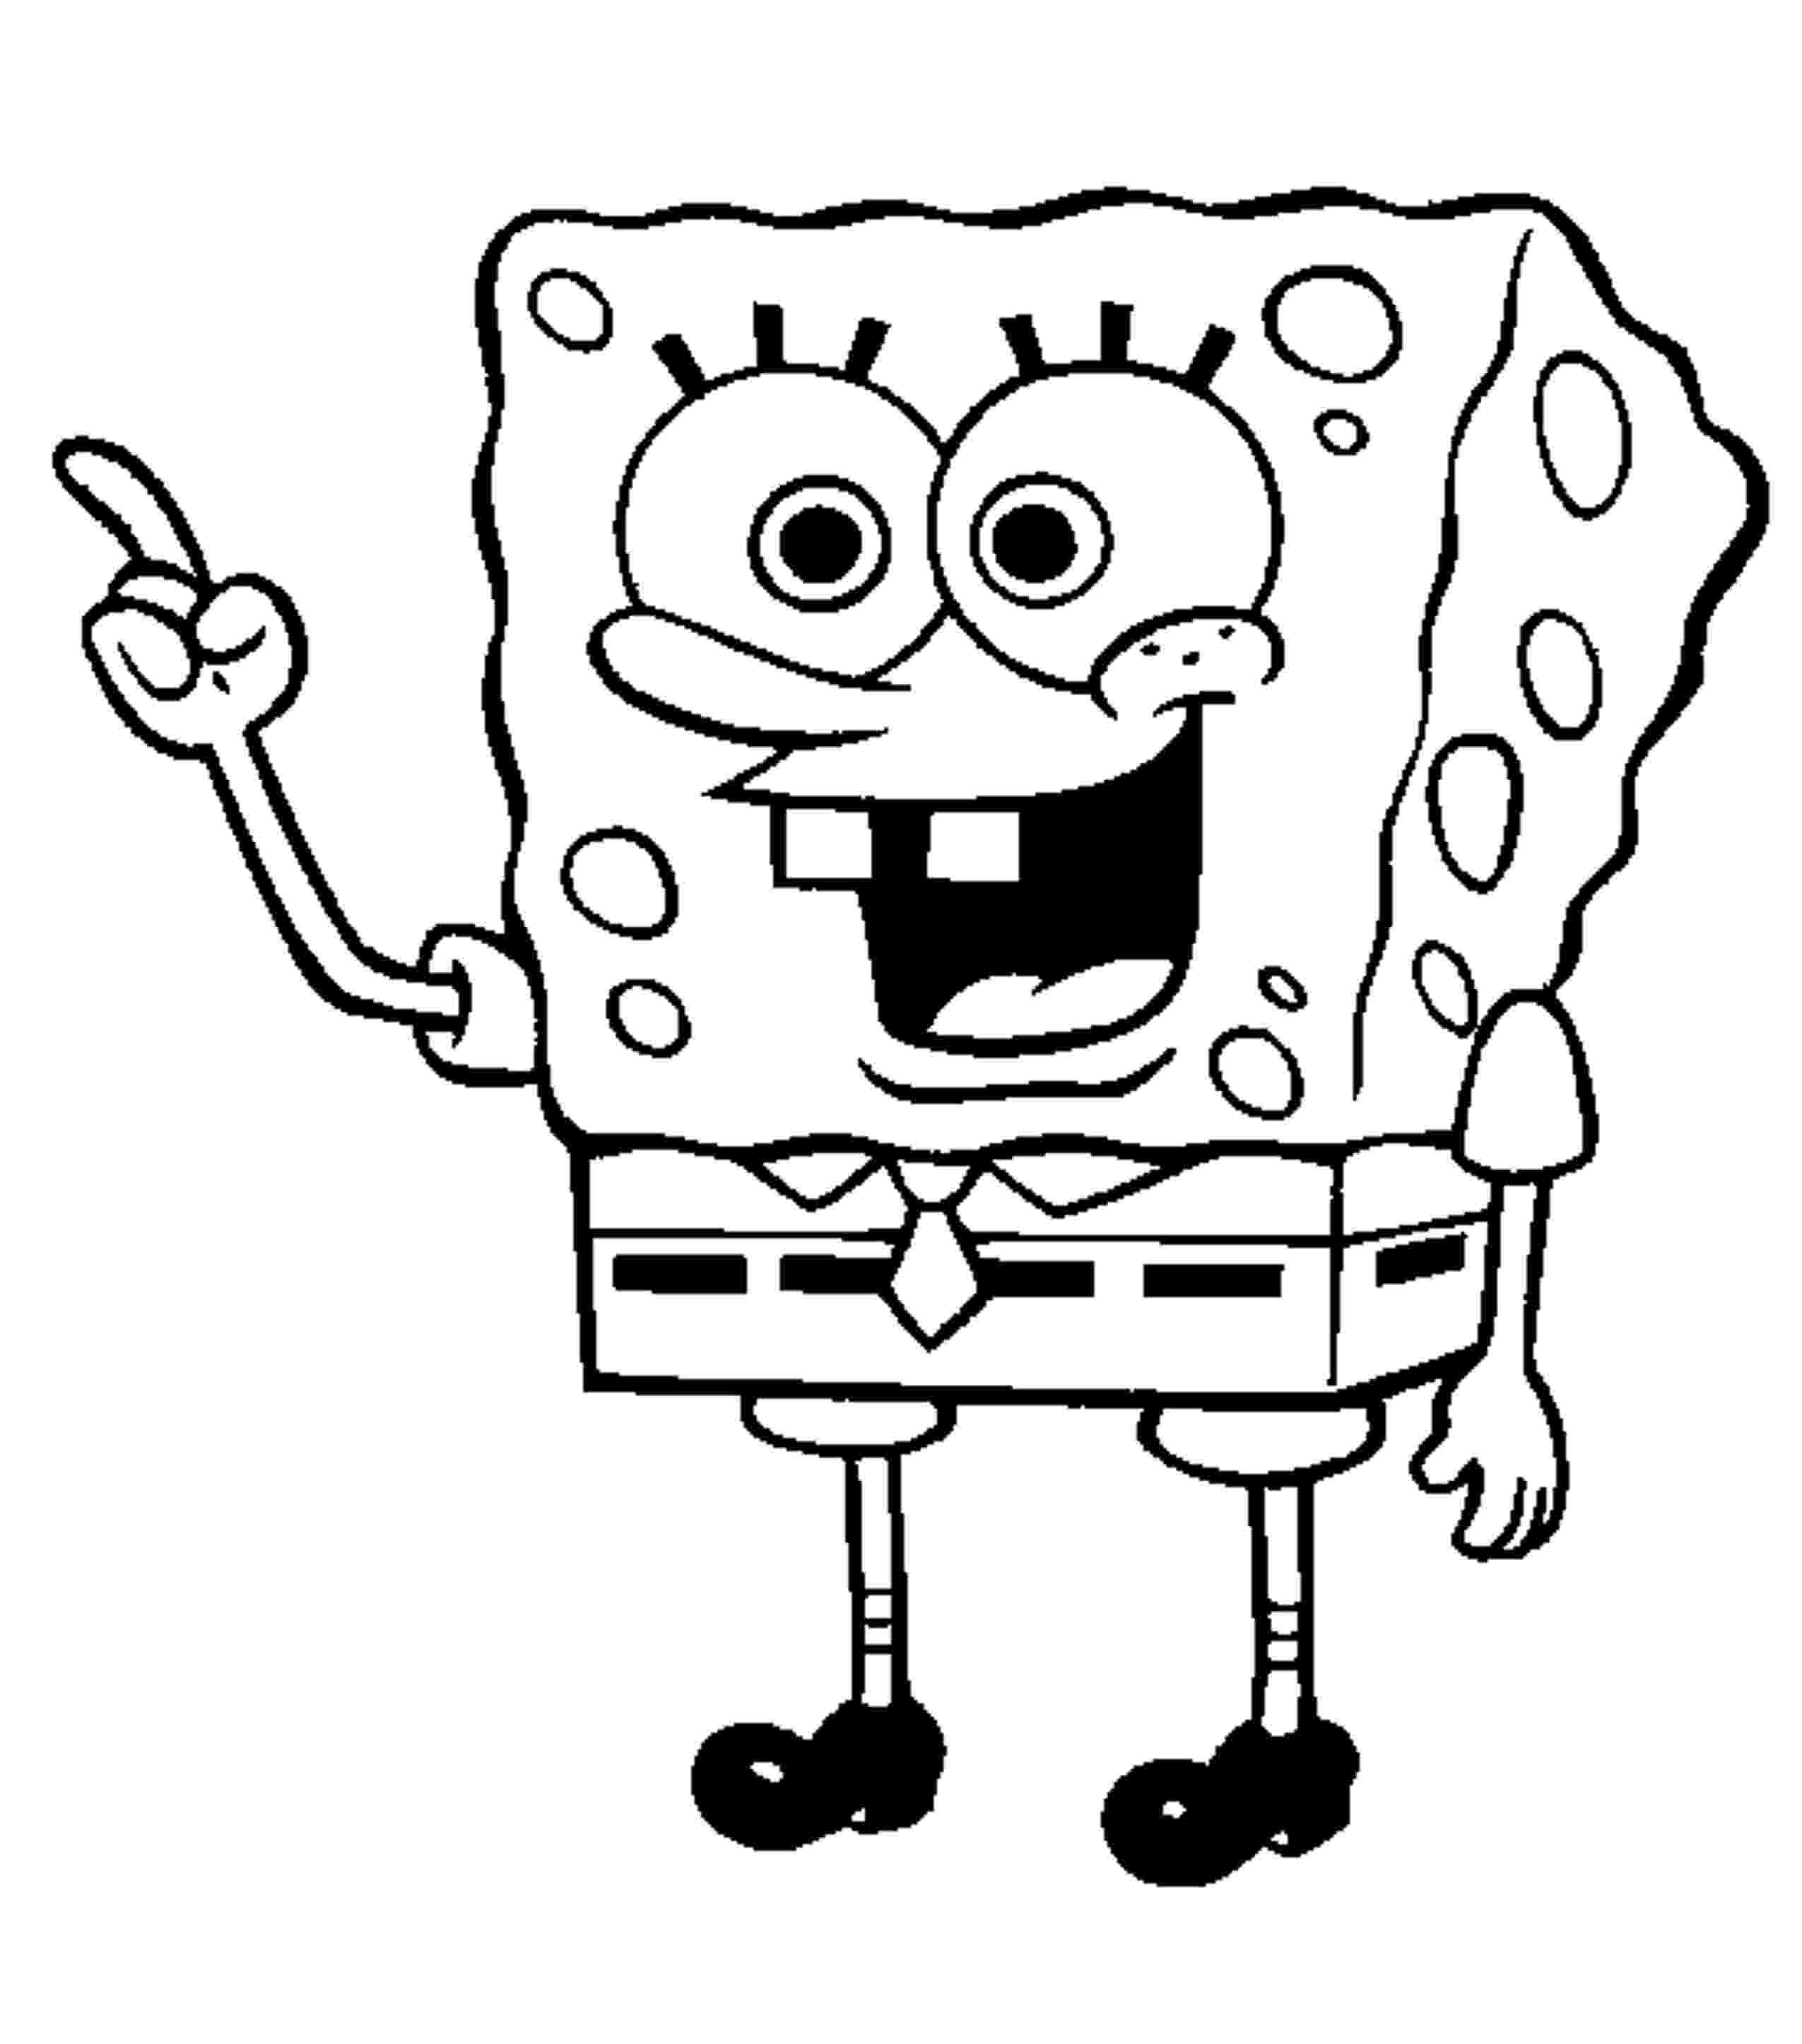 black and white pictures of spongebob squarepants spongebob pictures spongebob black and white of squarepants spongebob black pictures white and